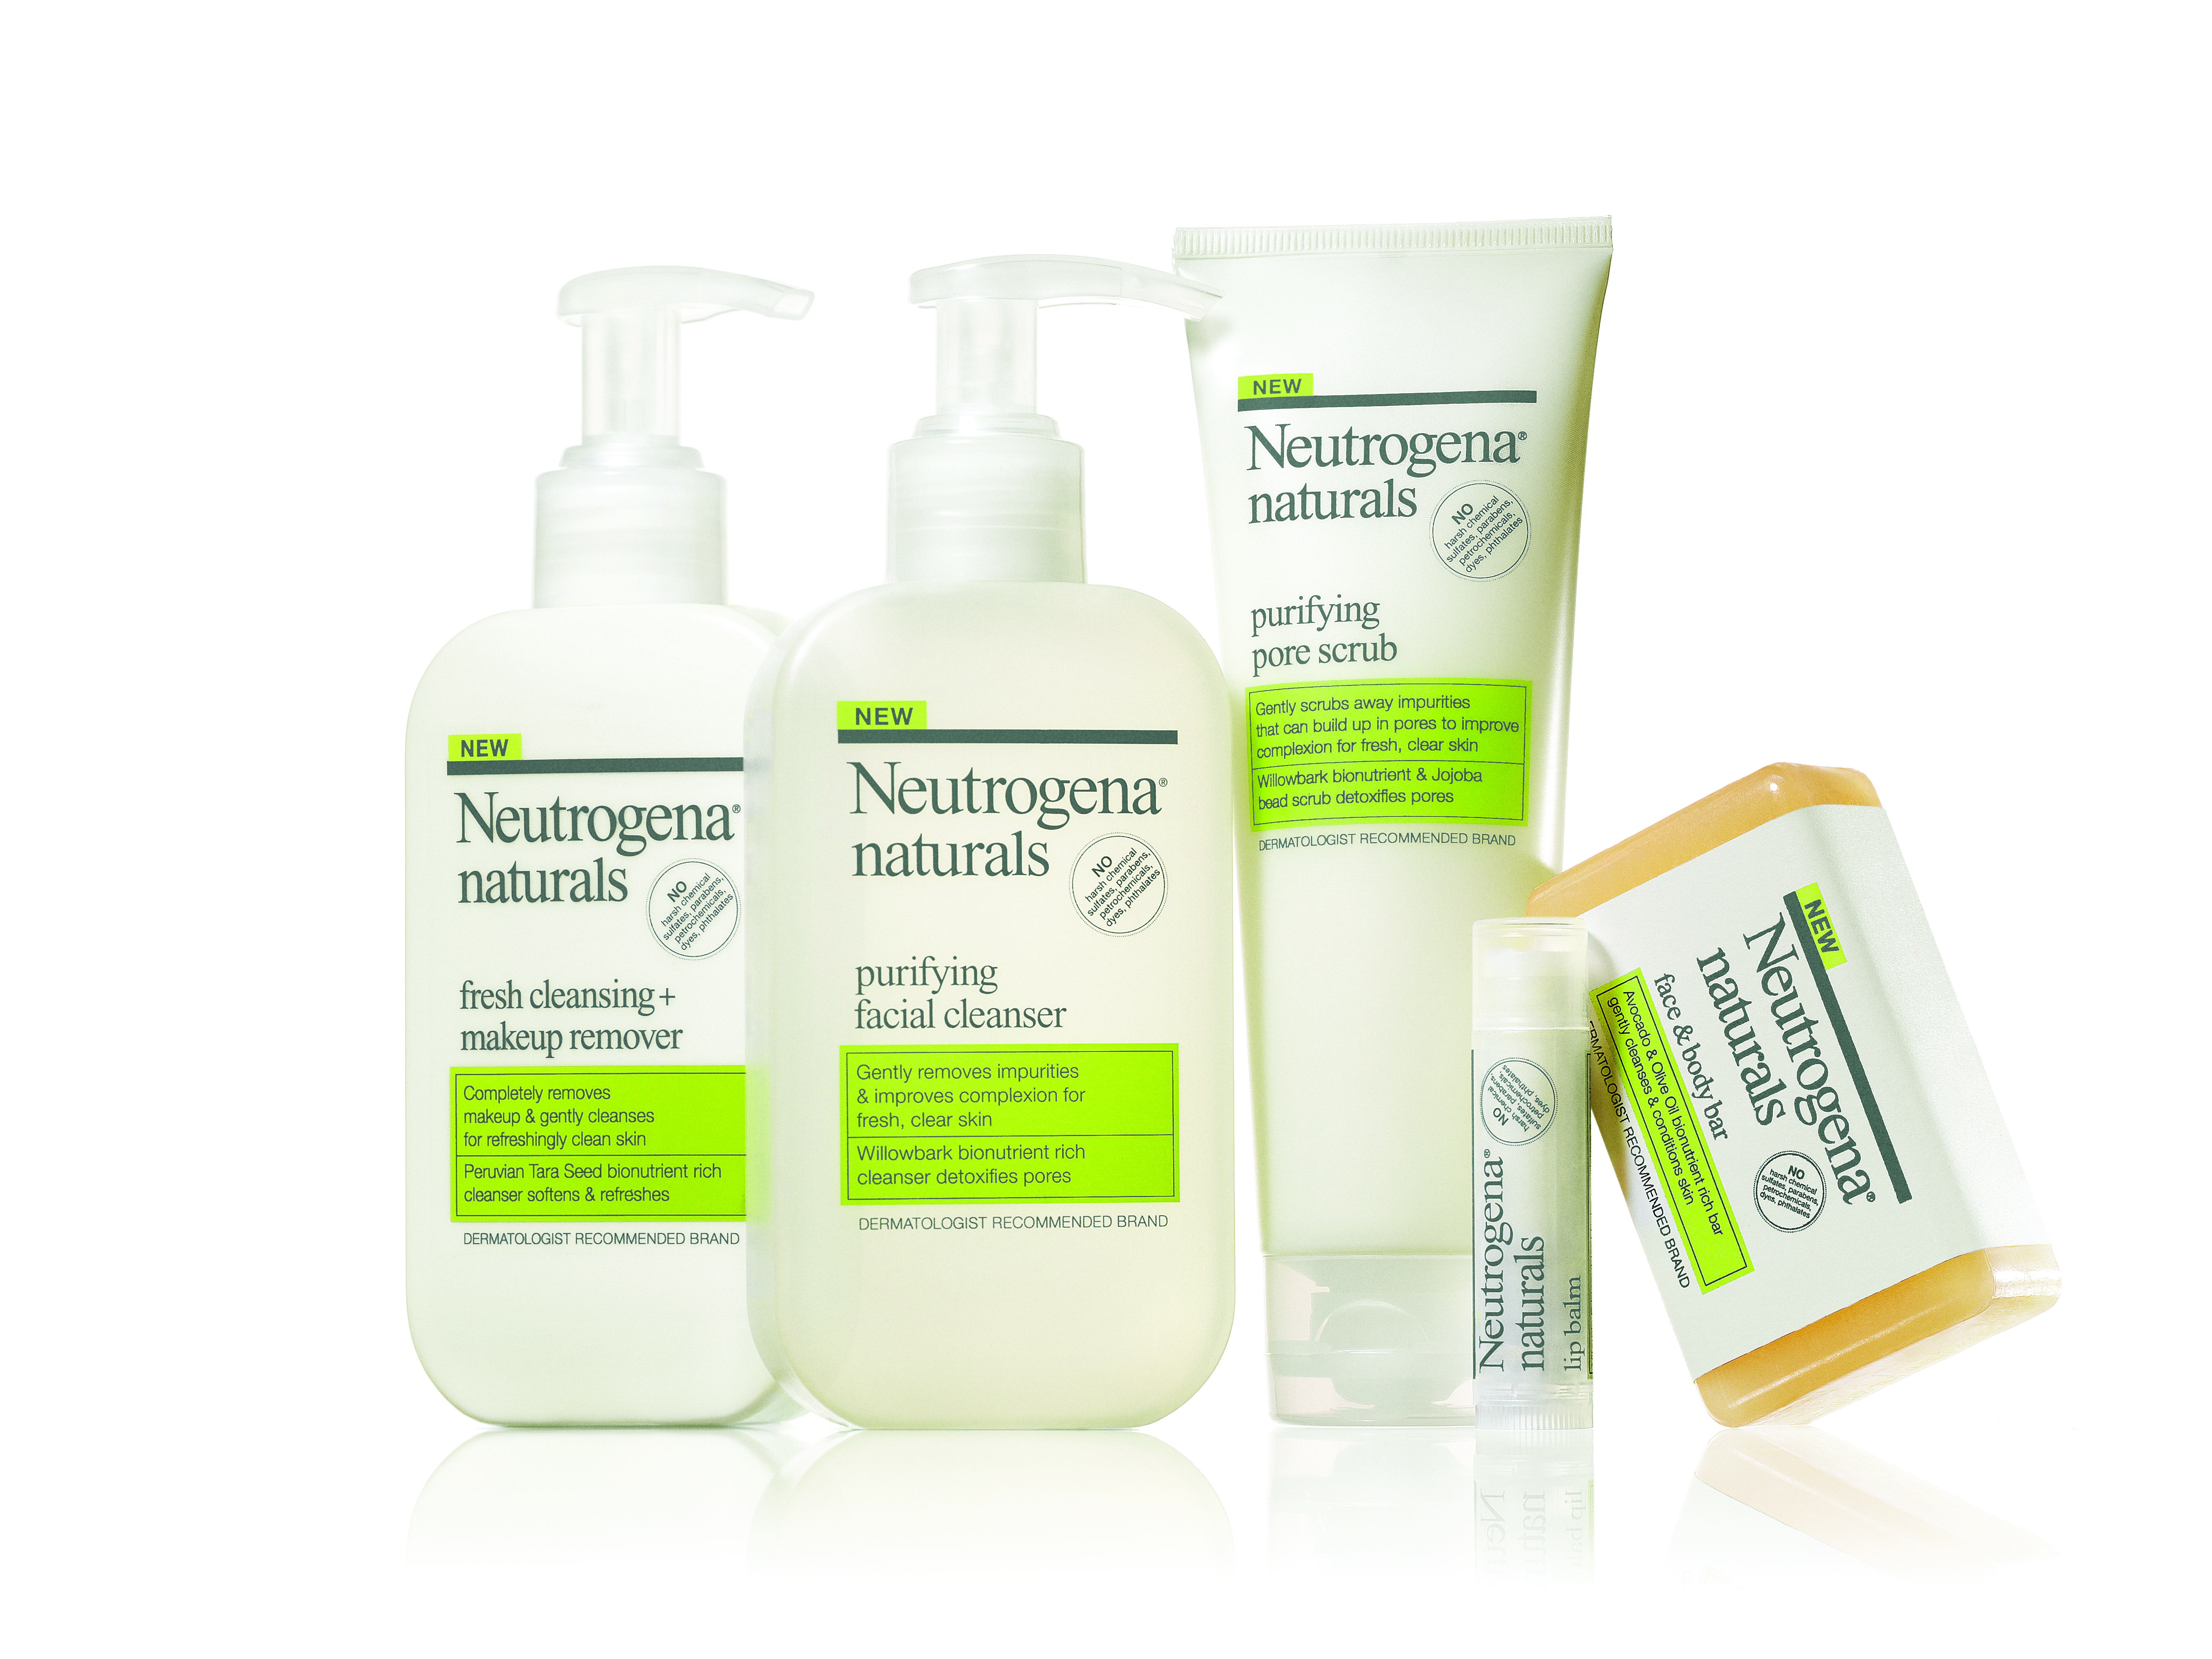 Neutrogena Naturals Cleanser Review